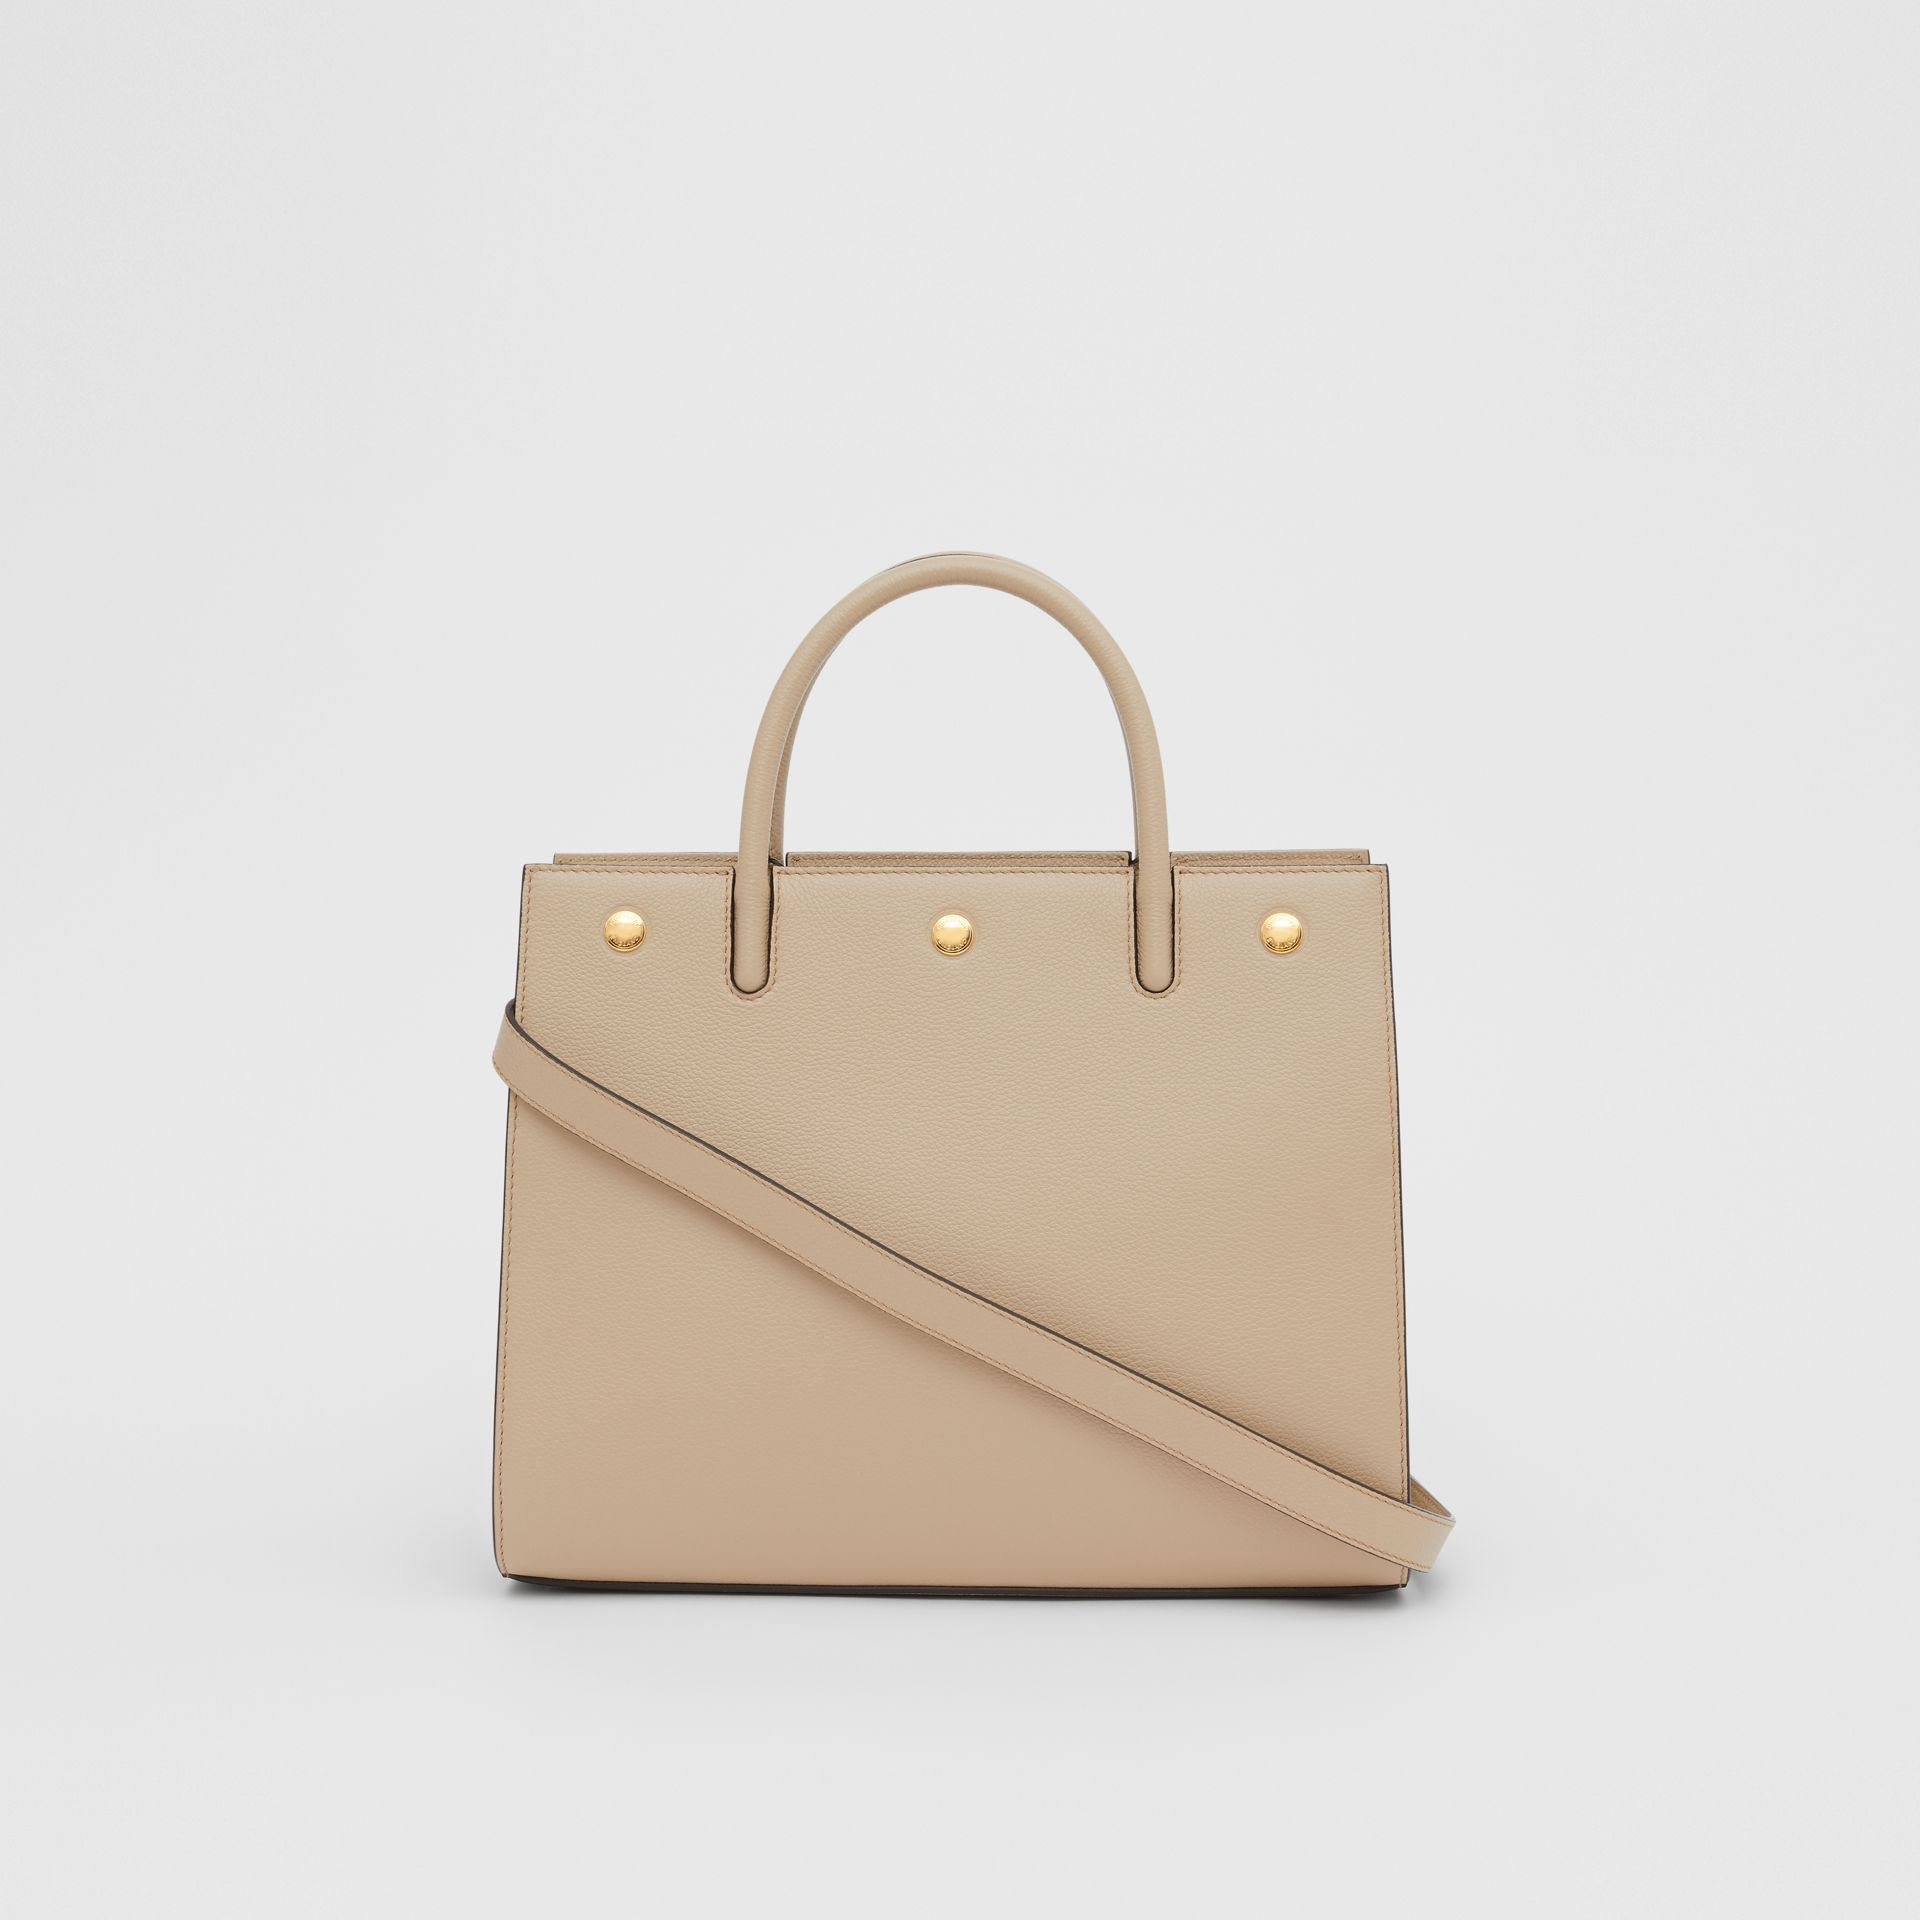 Small Leather Two-handle Title Bag in Light Beige - Women | Burberry - gallery image 7